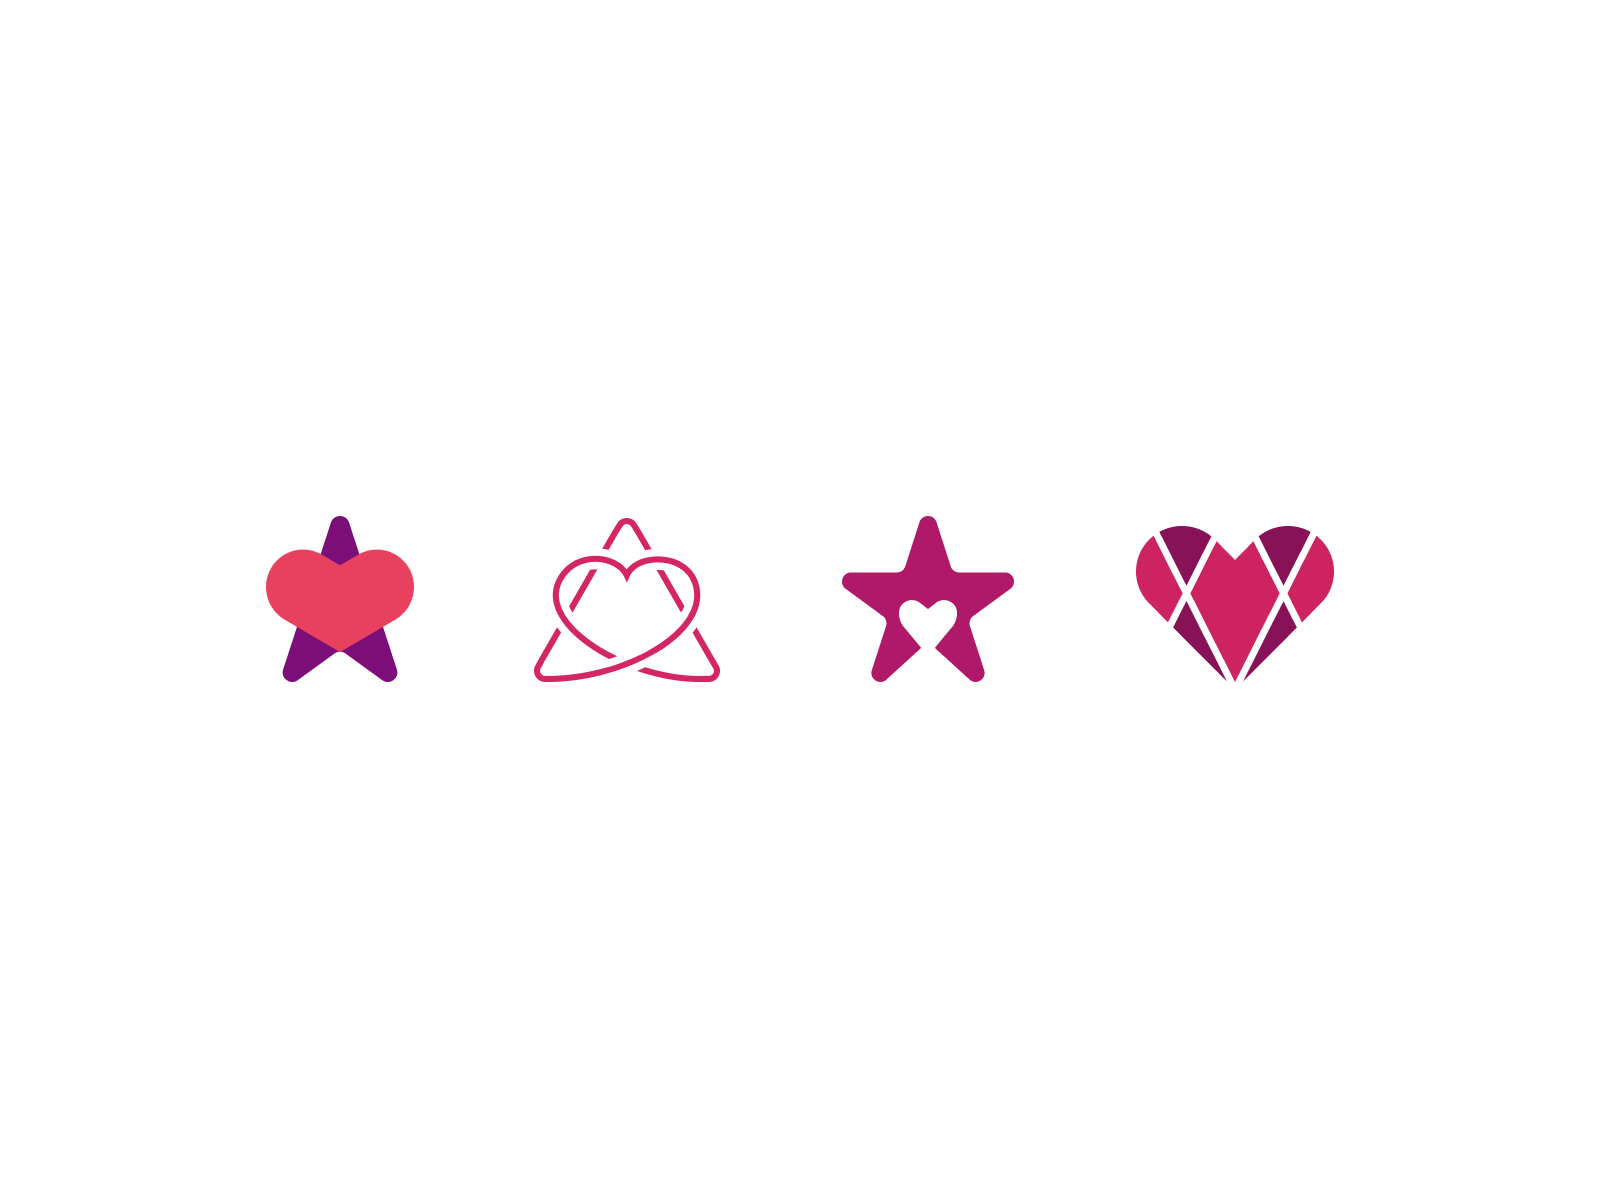 Digital Hospice Sketches star heart wip illustration figma mark icon logo